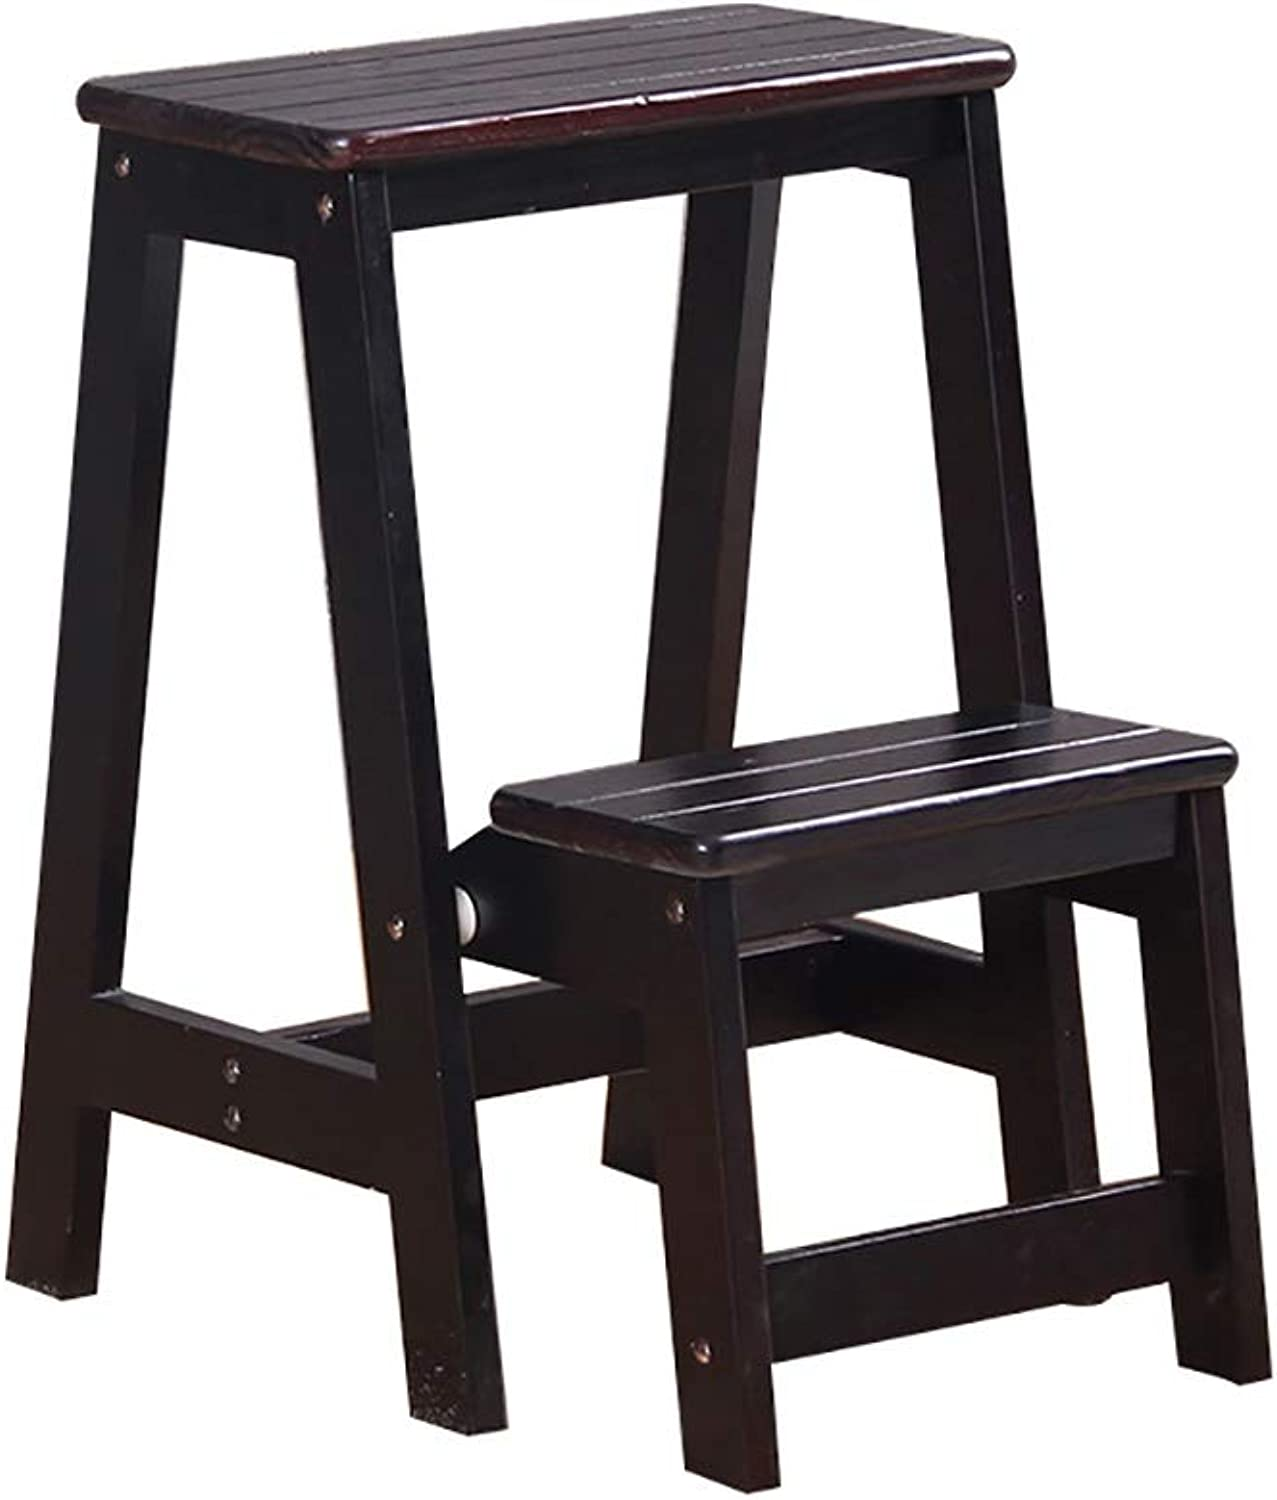 2-Step Multi-Functional Stairs Stool, Soild Wood Folding Ladder stools with Wide Pedal (Natural Pine), 55cm high (color   Dark nut-Brown)